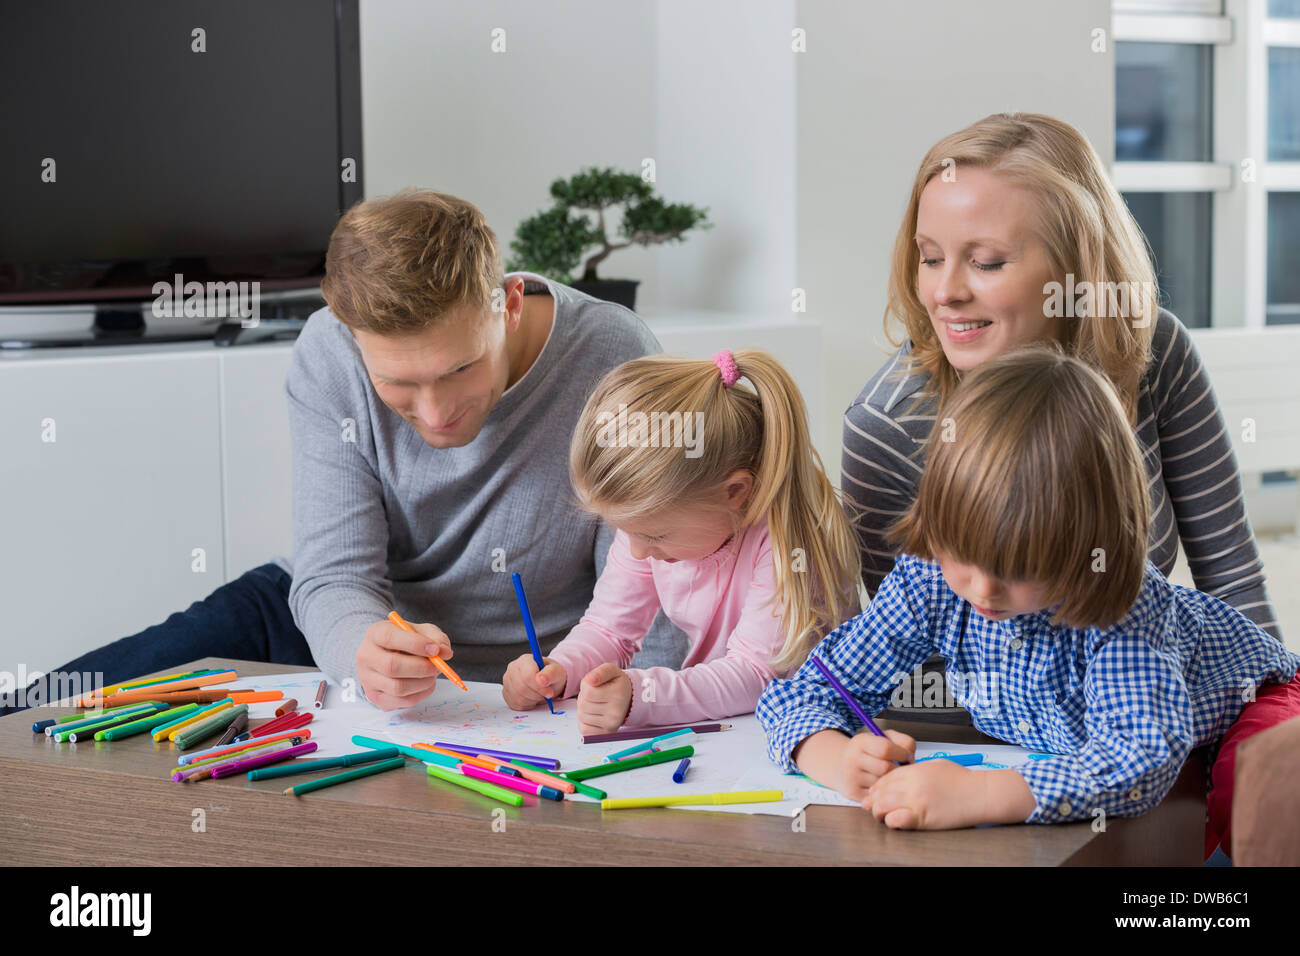 Parents with children drawing together at home - Stock Image